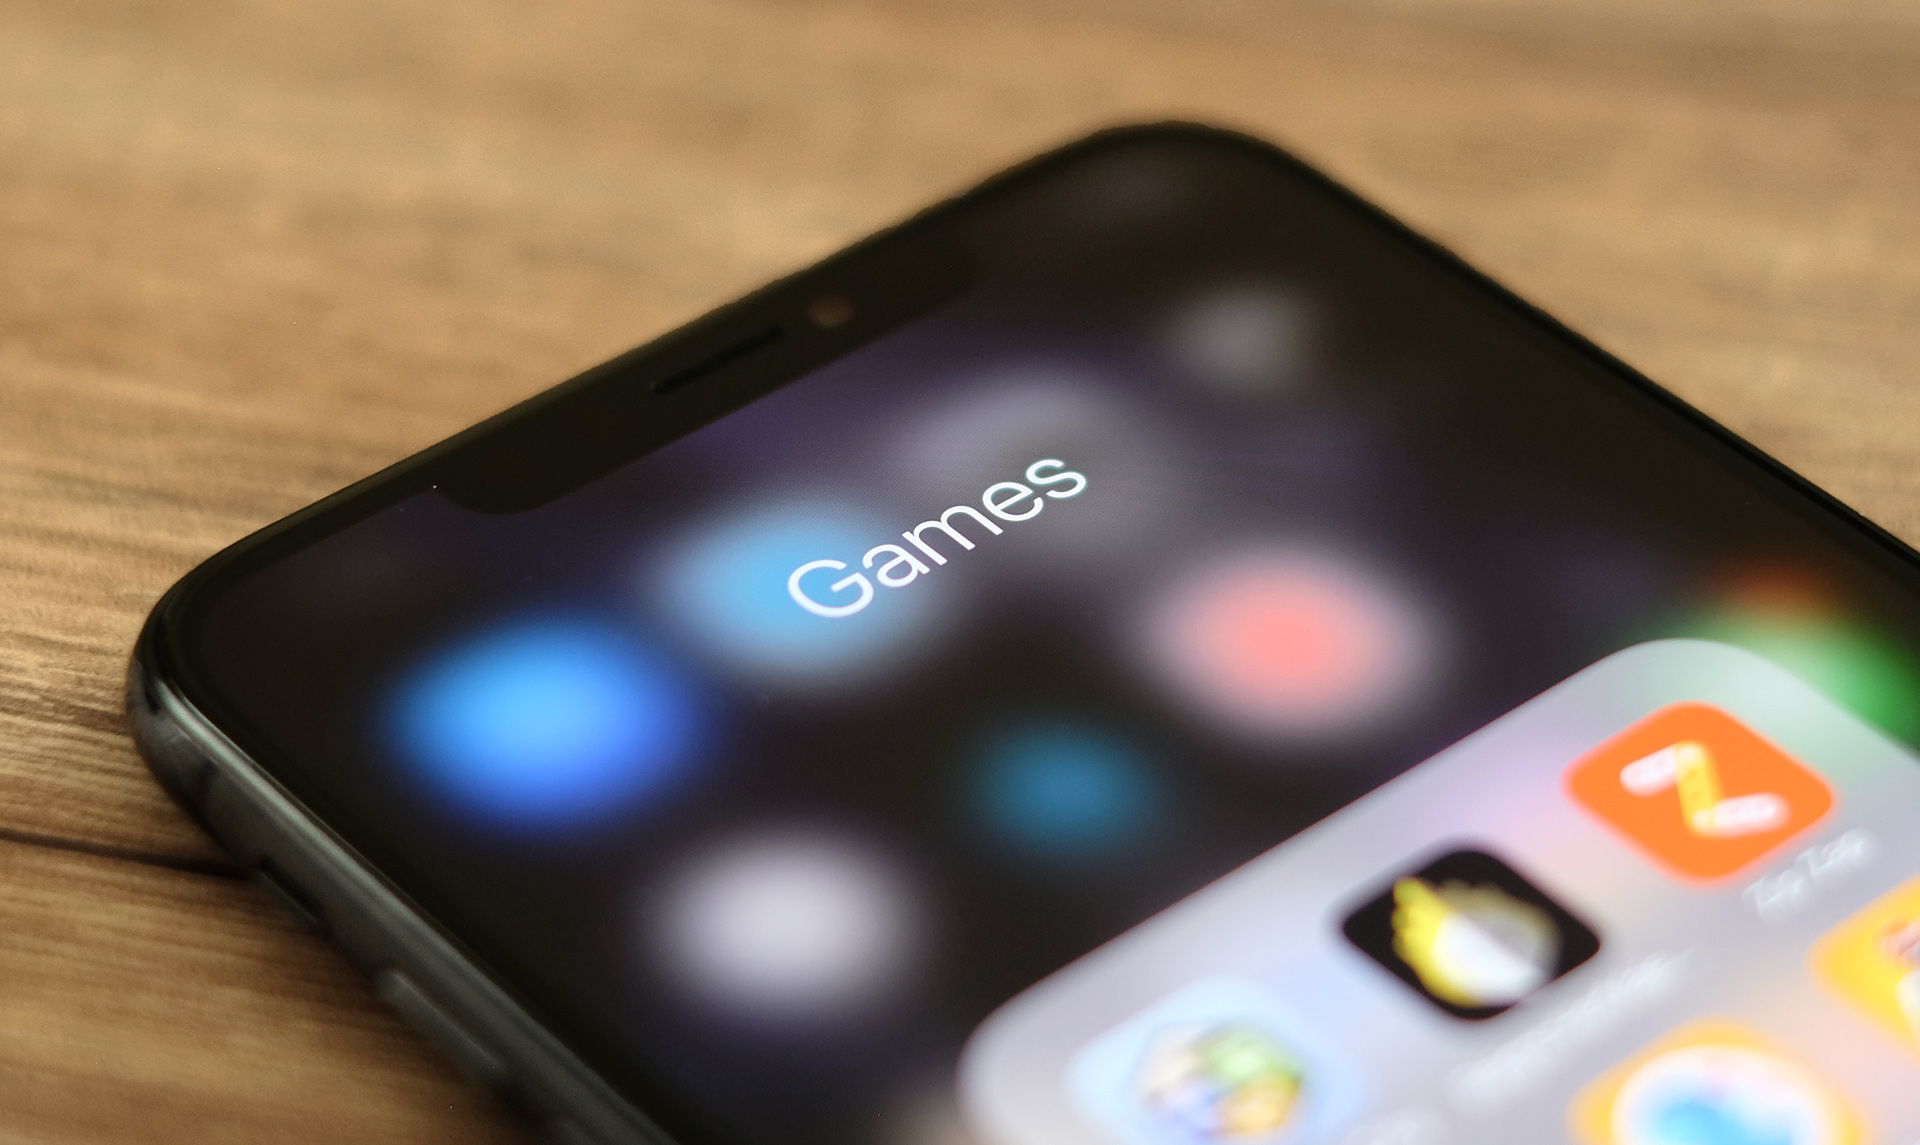 Can I play real money games on a mobile phone?